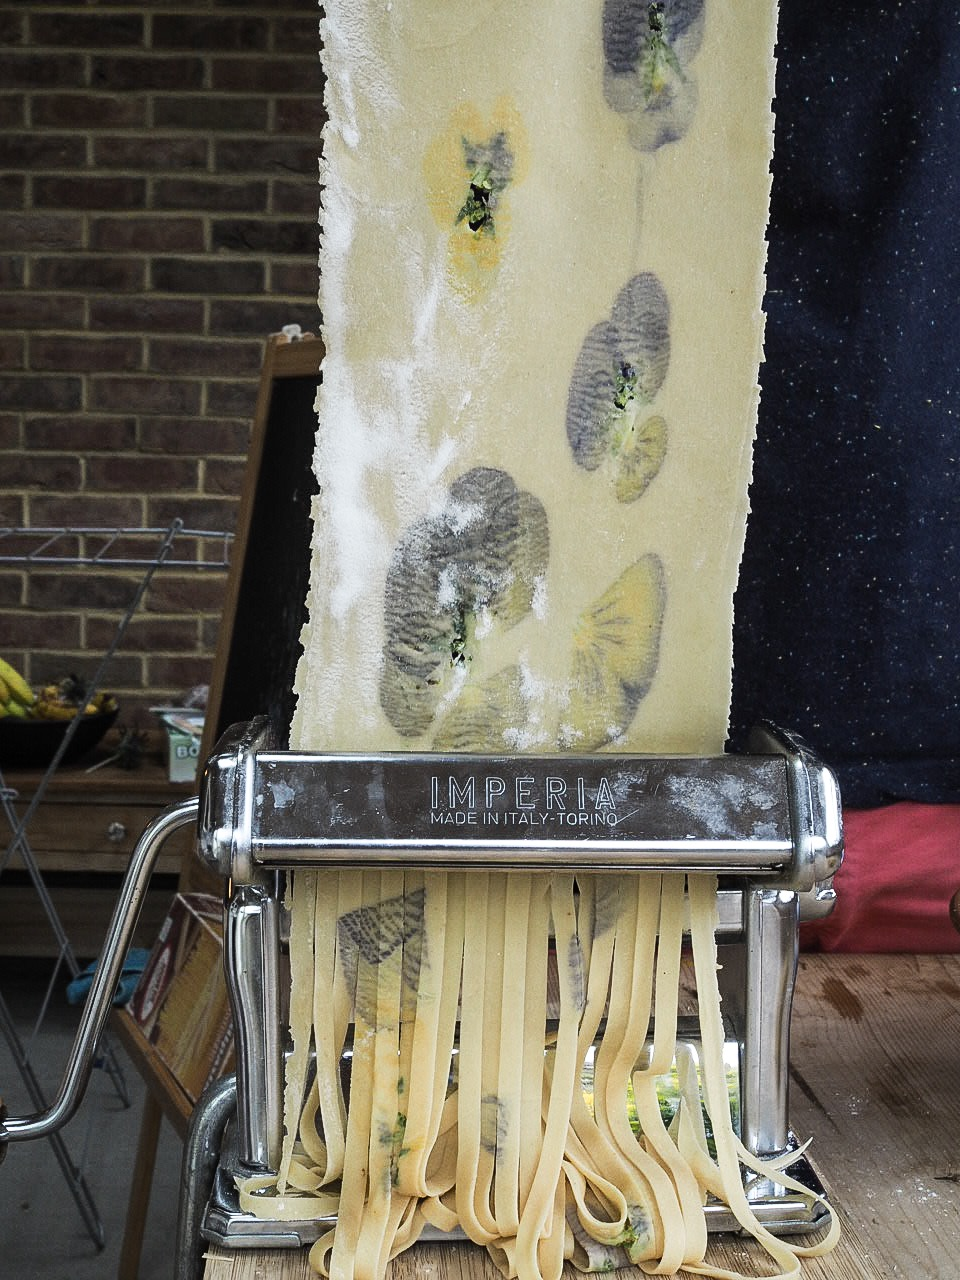 fresh pasta with edible flowers being cut into tagliatelle